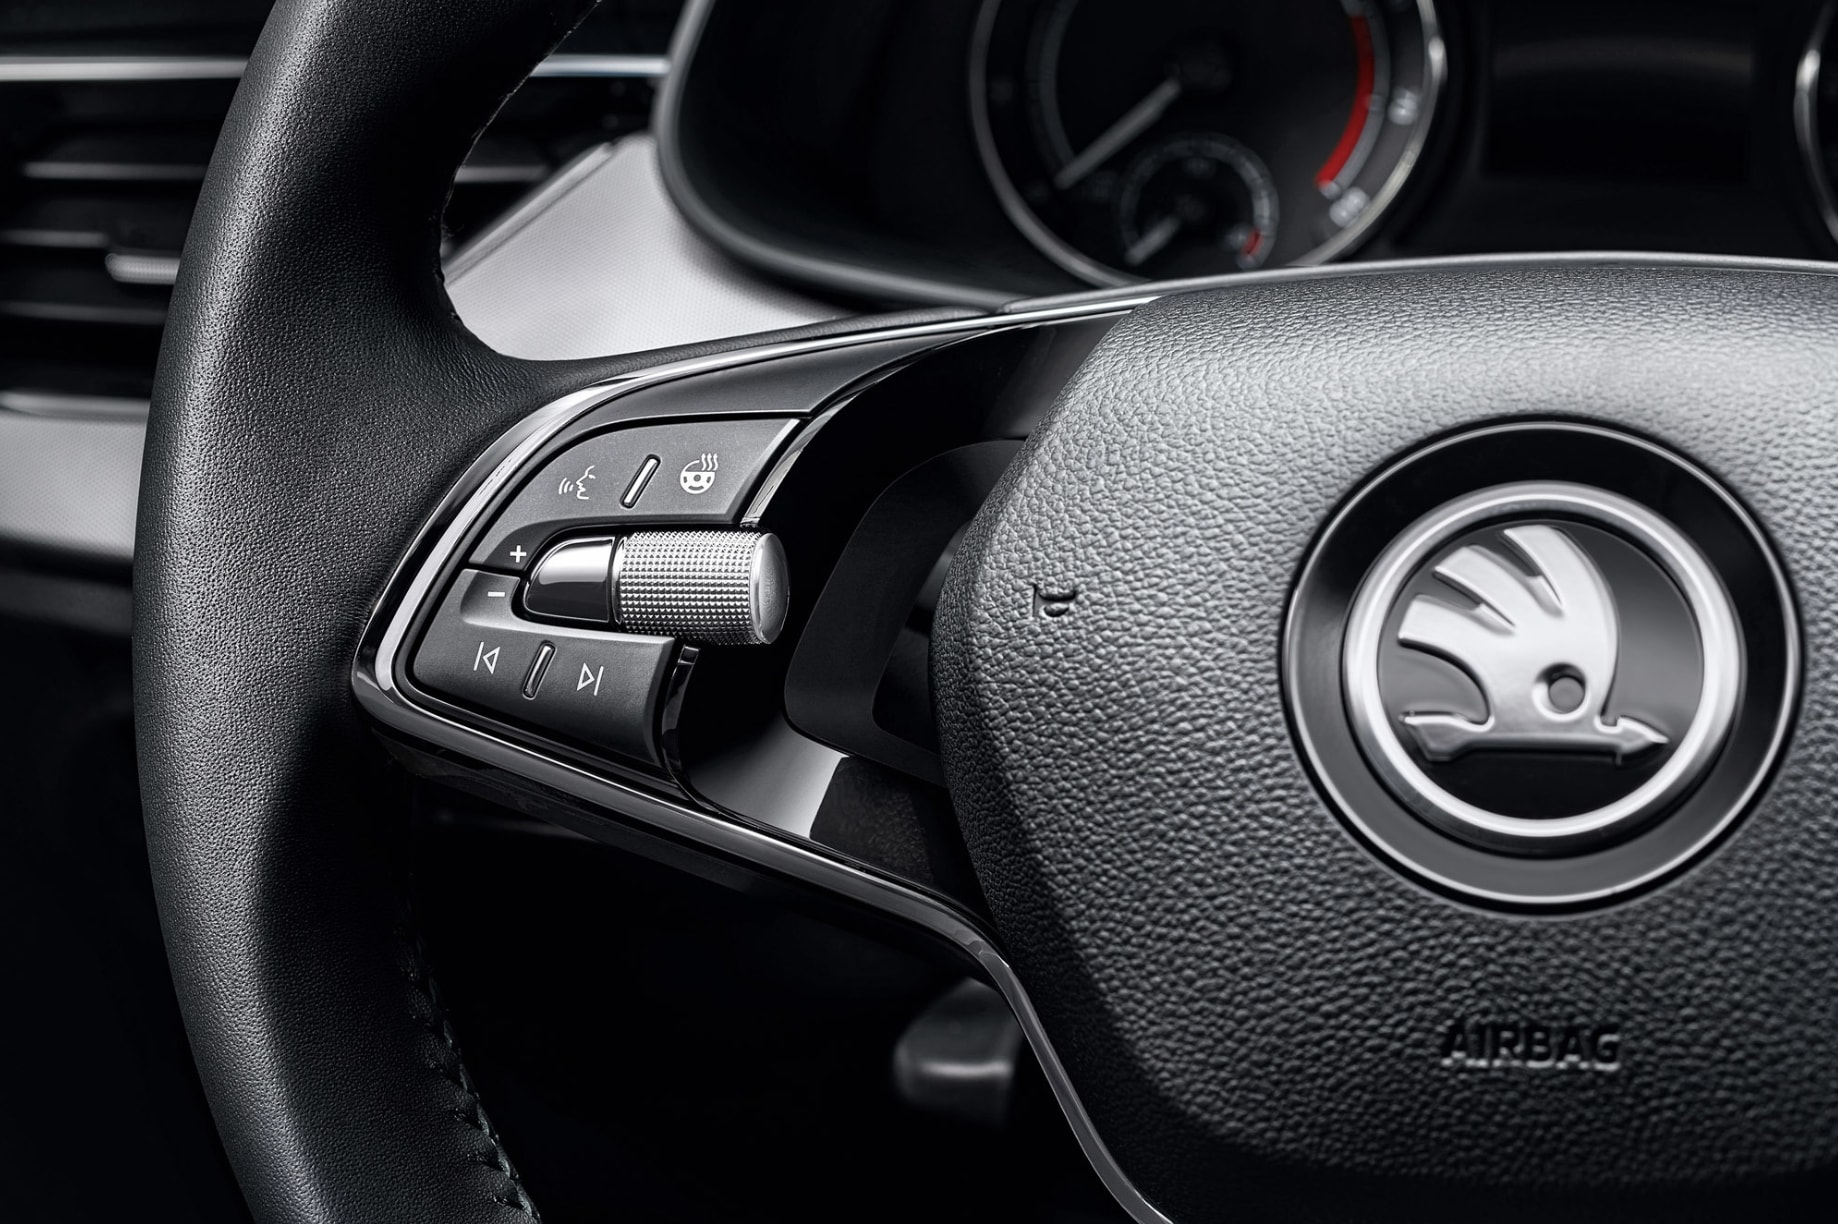 The car also is the first Skoda model in Russia to get a 2-spoke heated steering wheel